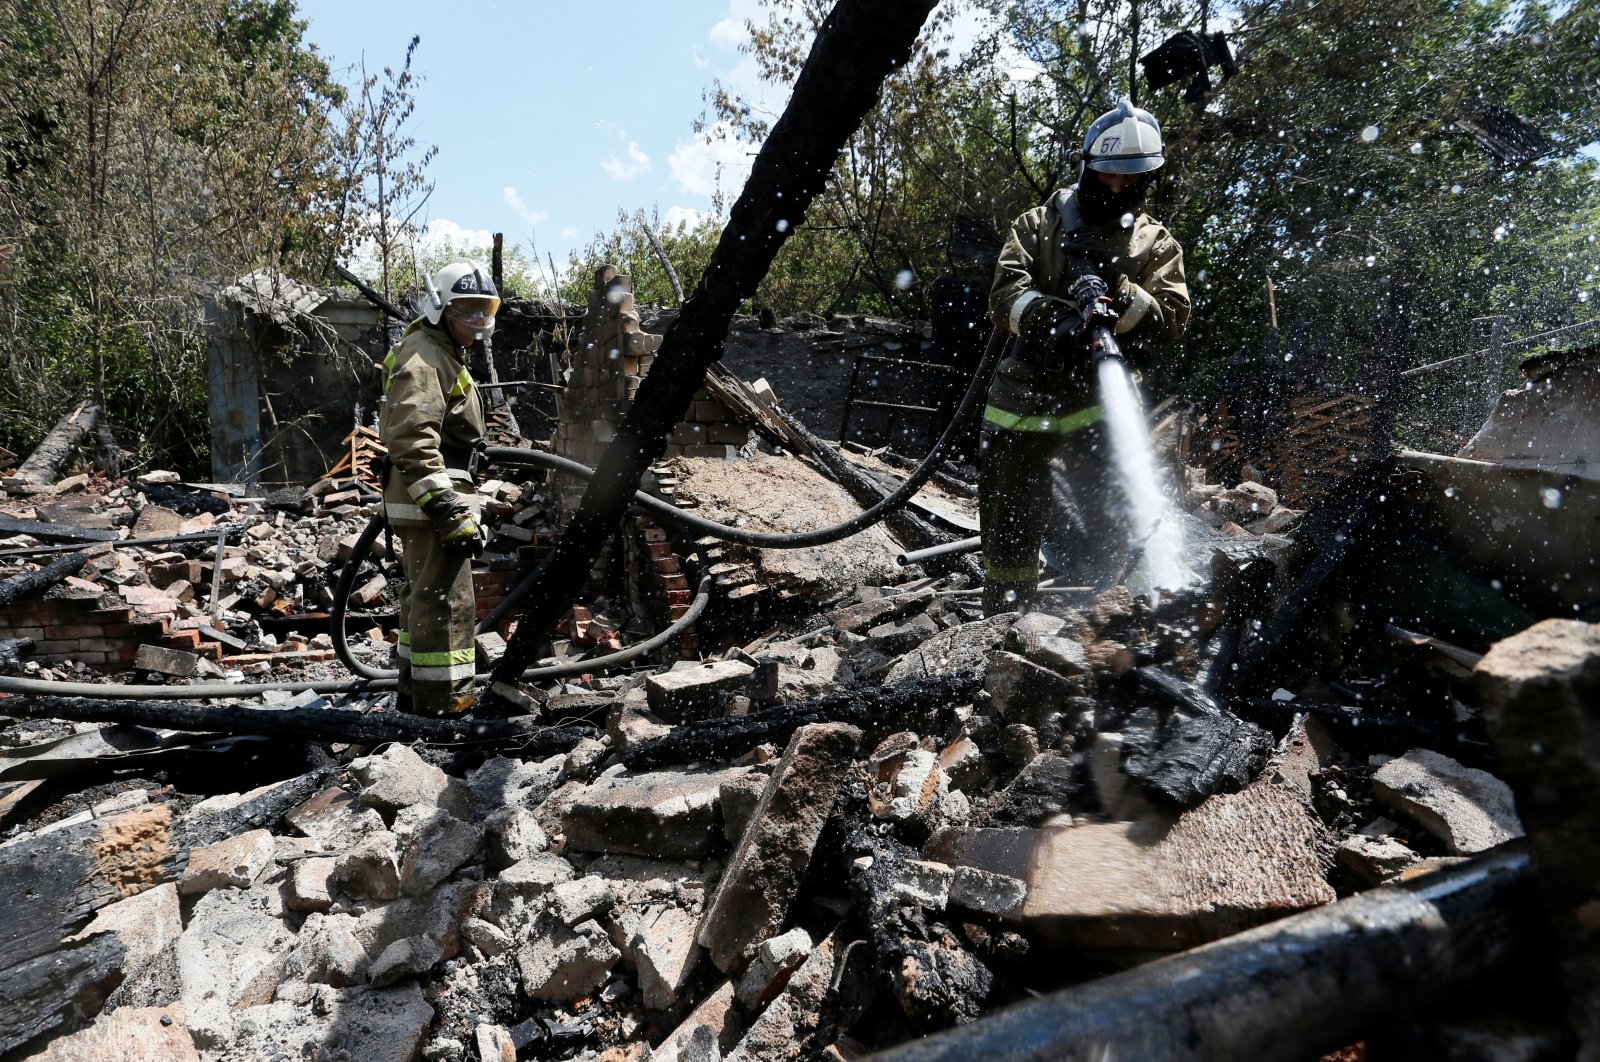 Firefighters work at the ruins of a house in the separatist-controlled city of Donetsk, Ukraine, July 22, 2020. (Reuters Photo)